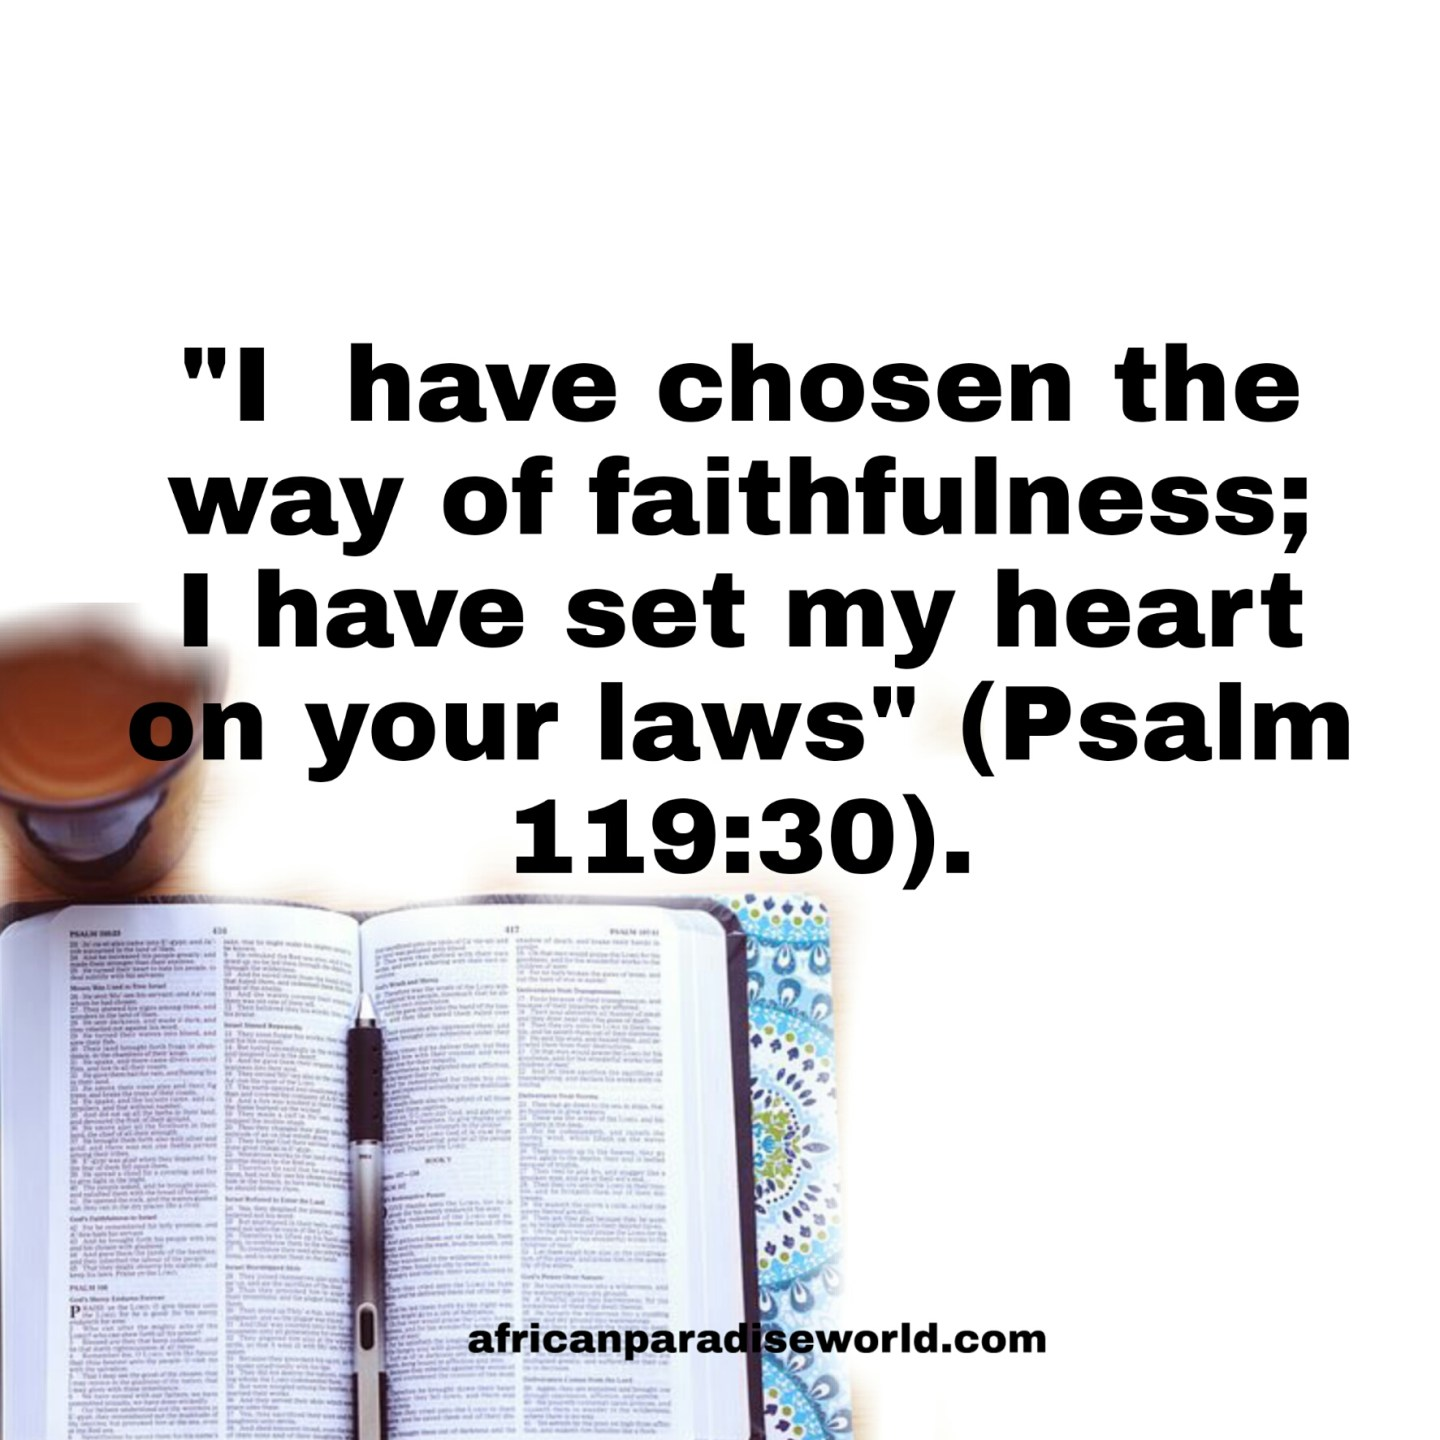 Bible verse about God's law